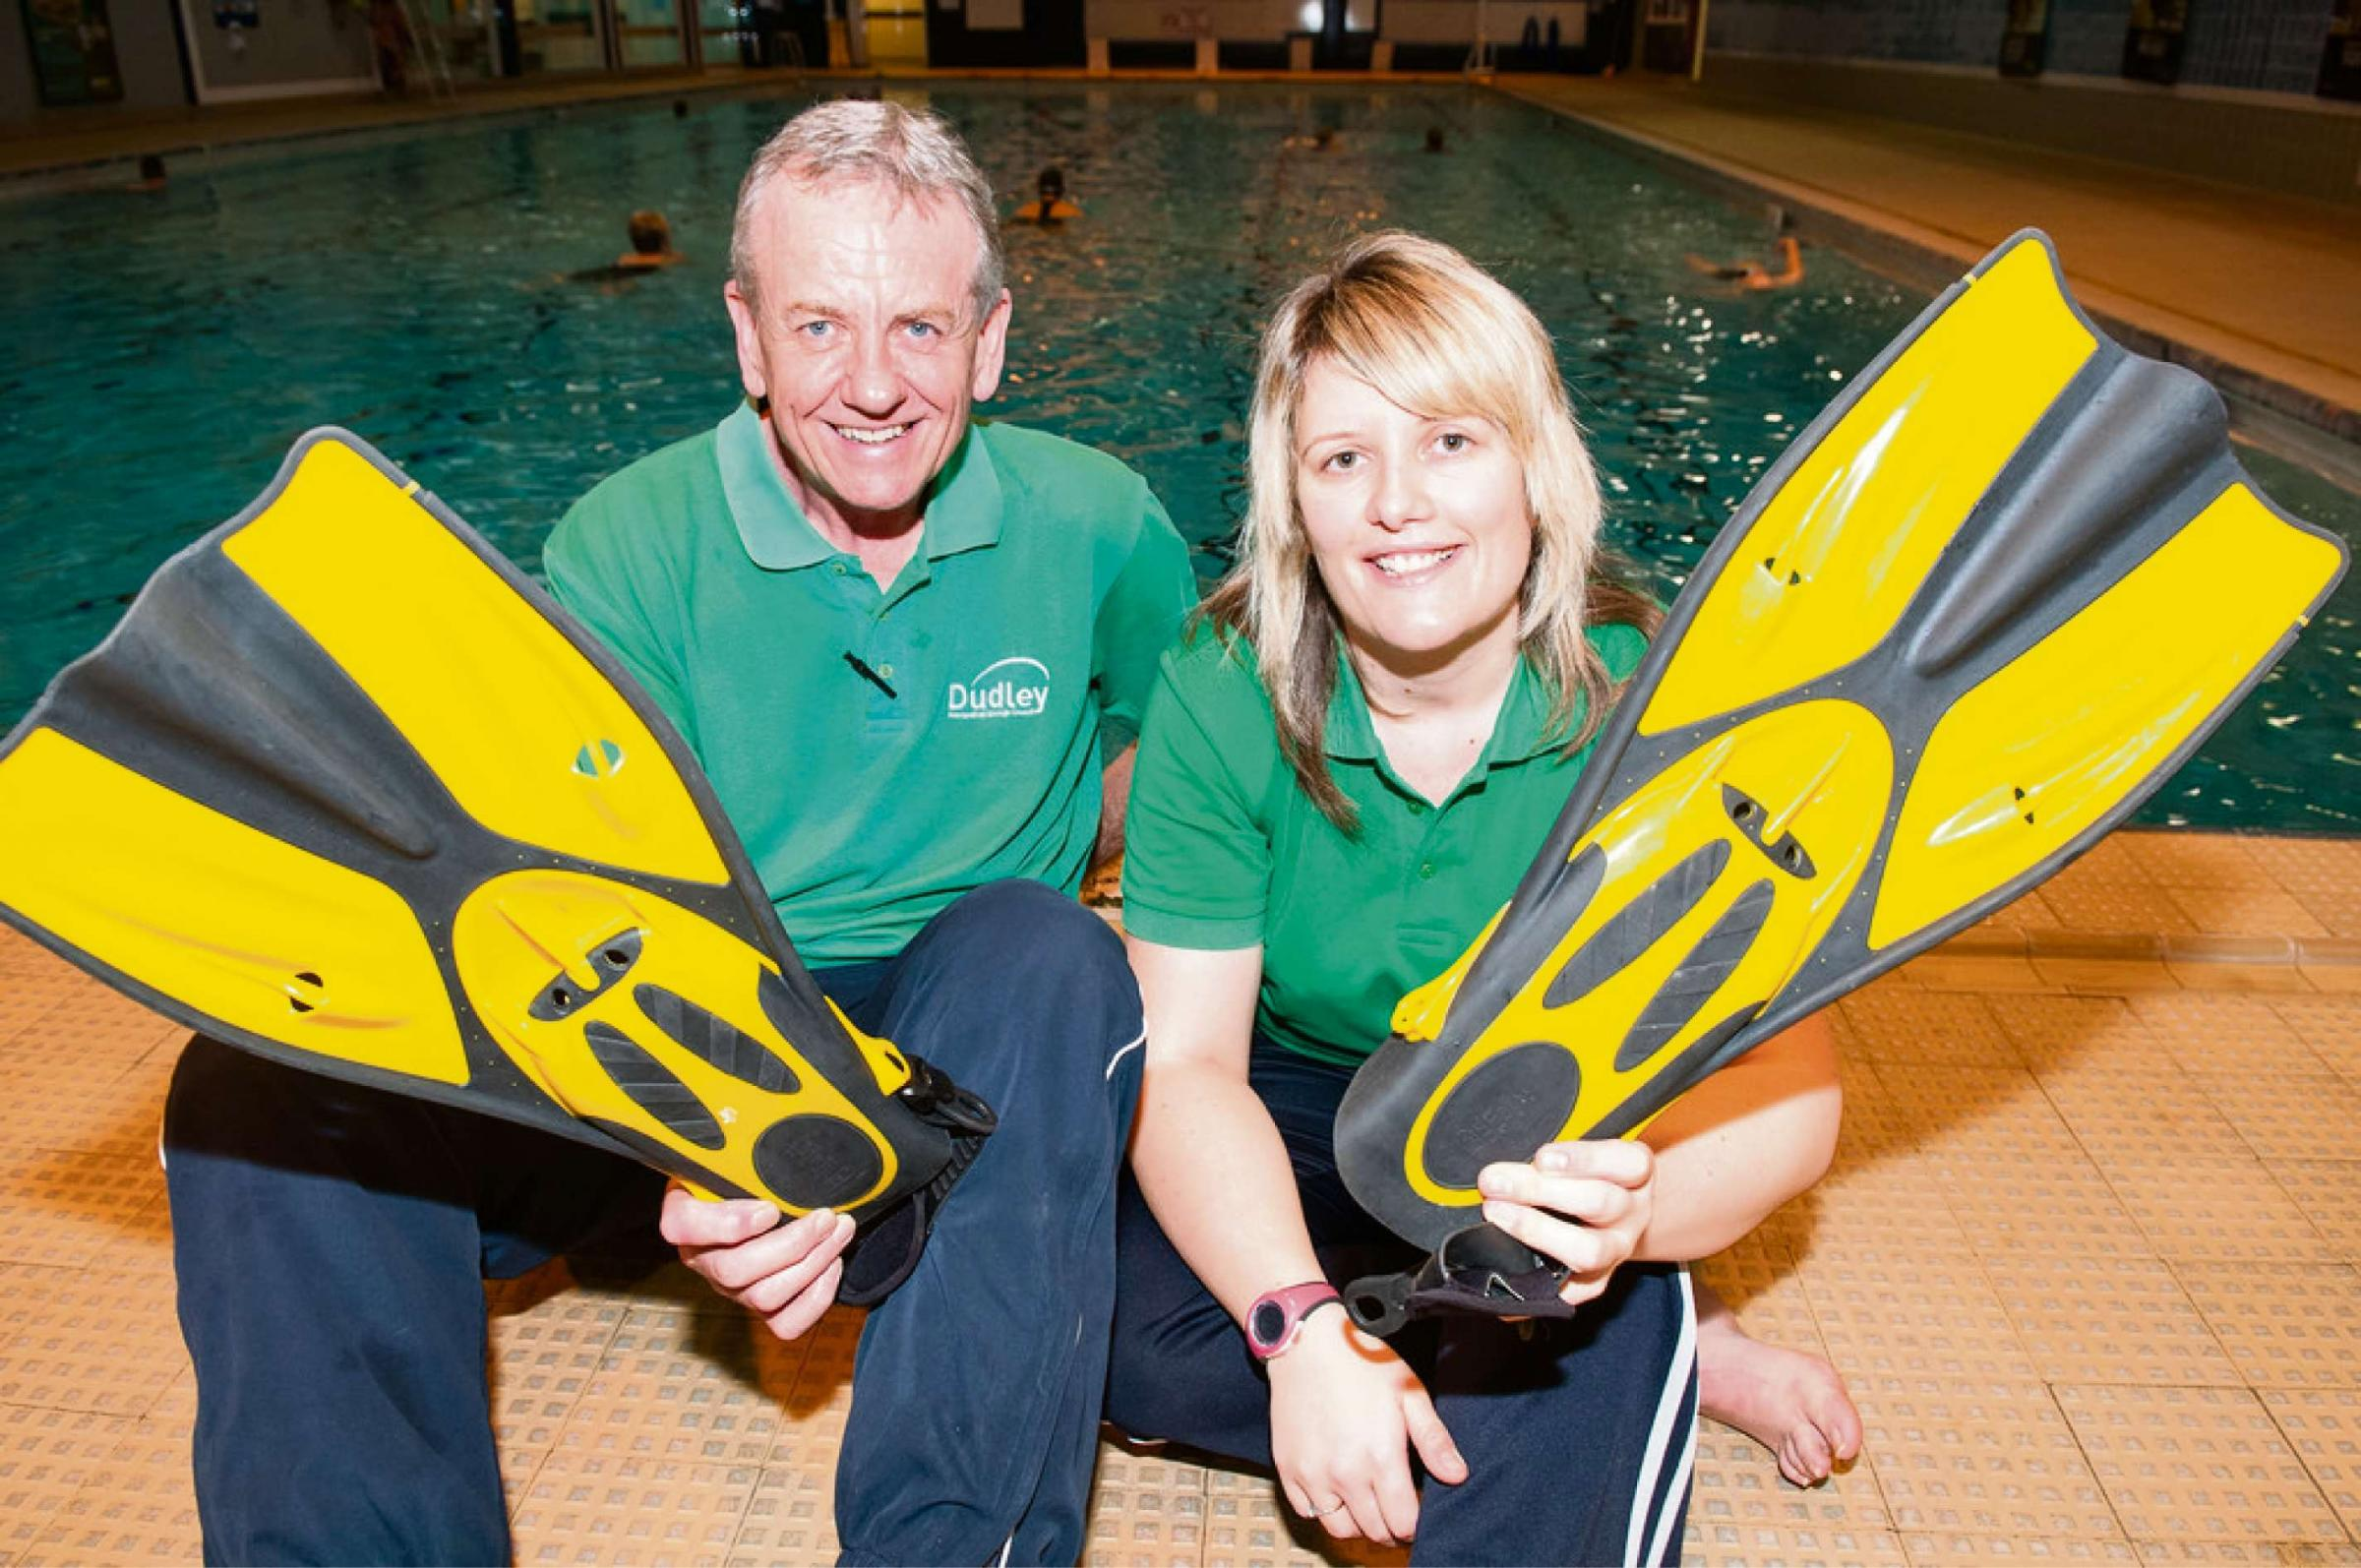 Steve Lloyd and Gemma Staples get ready for the new exercise class